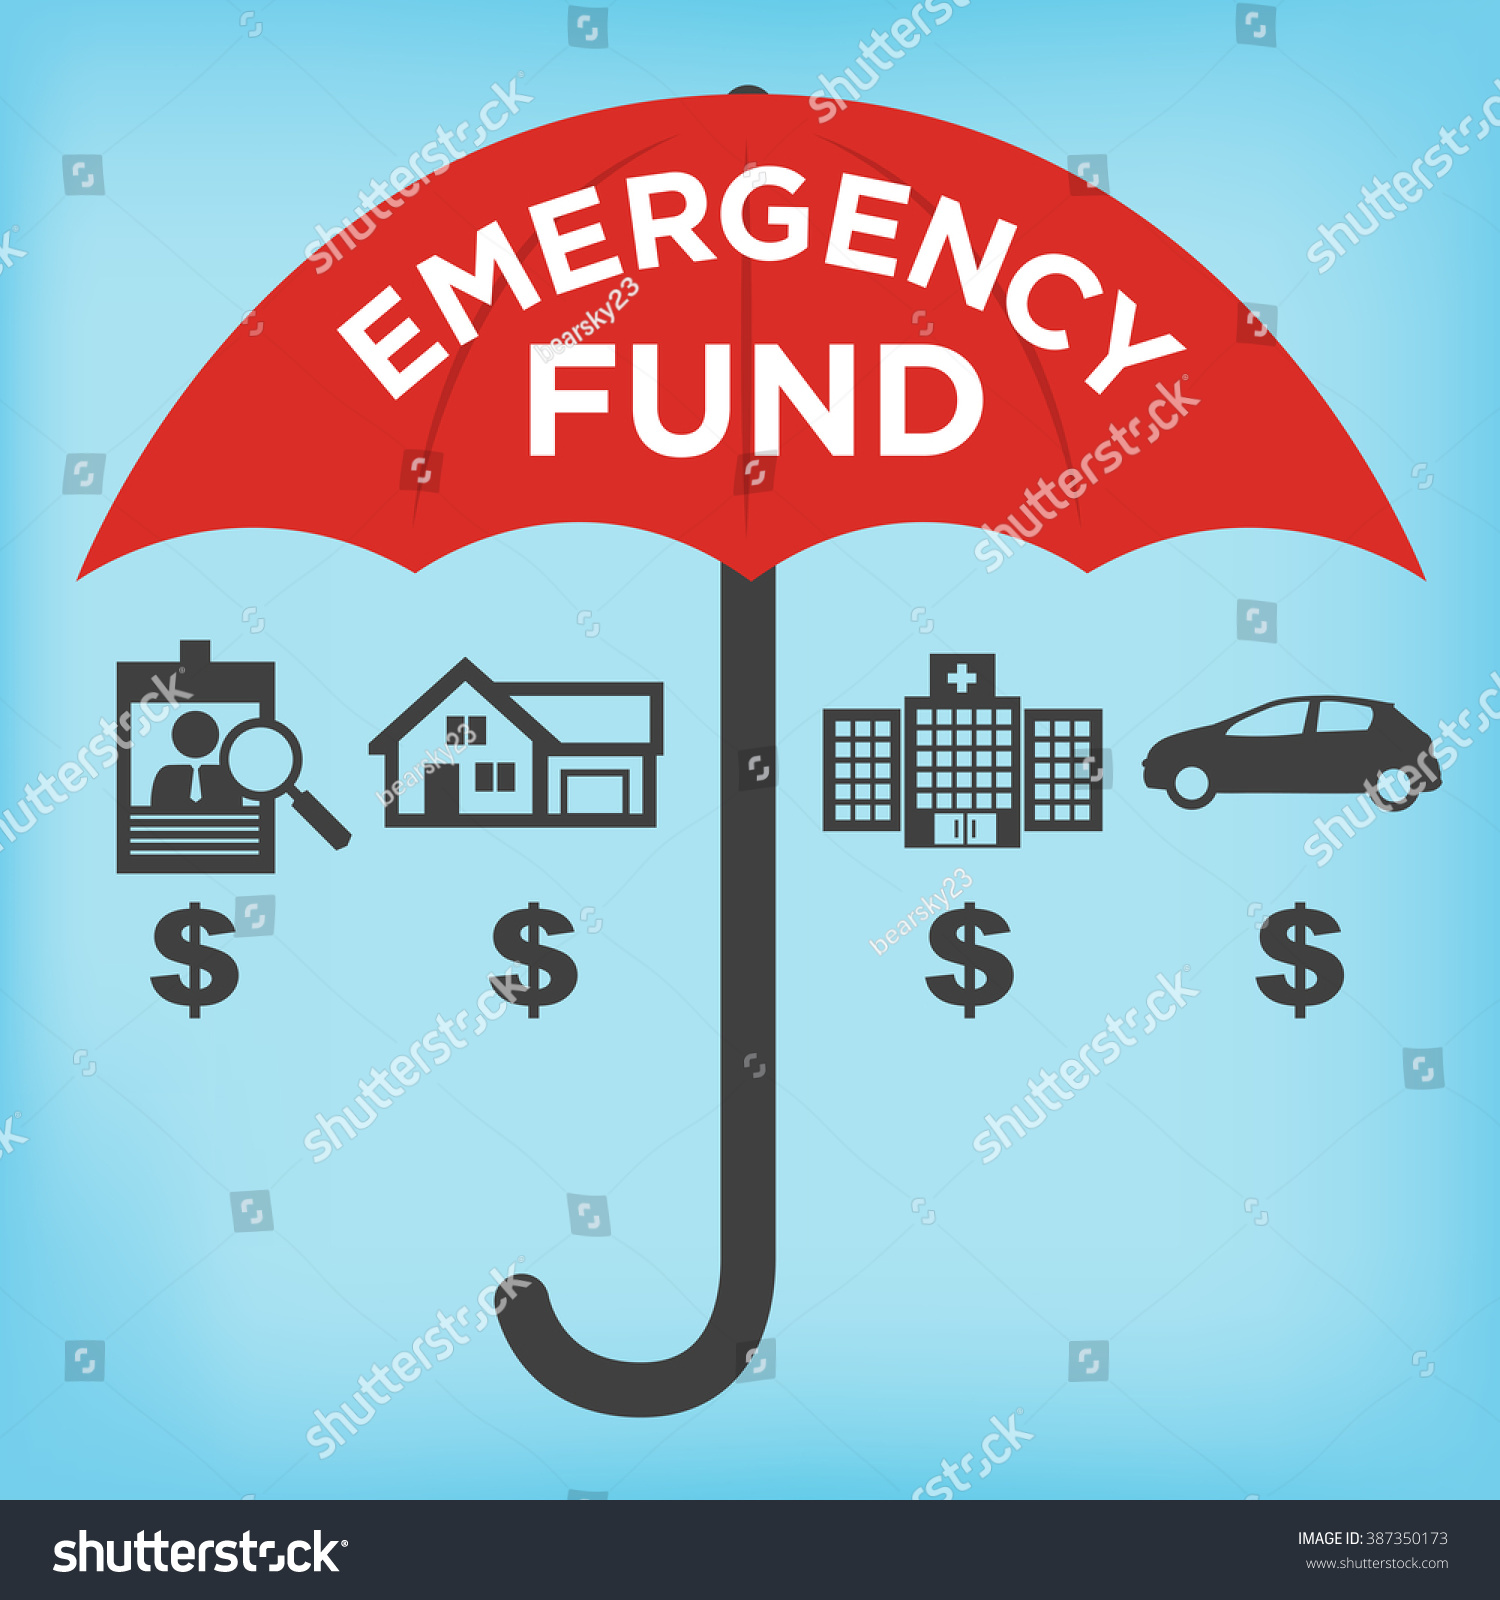 Financial Emergency Fund Icons with Umbrella - Home or House, Car or ...